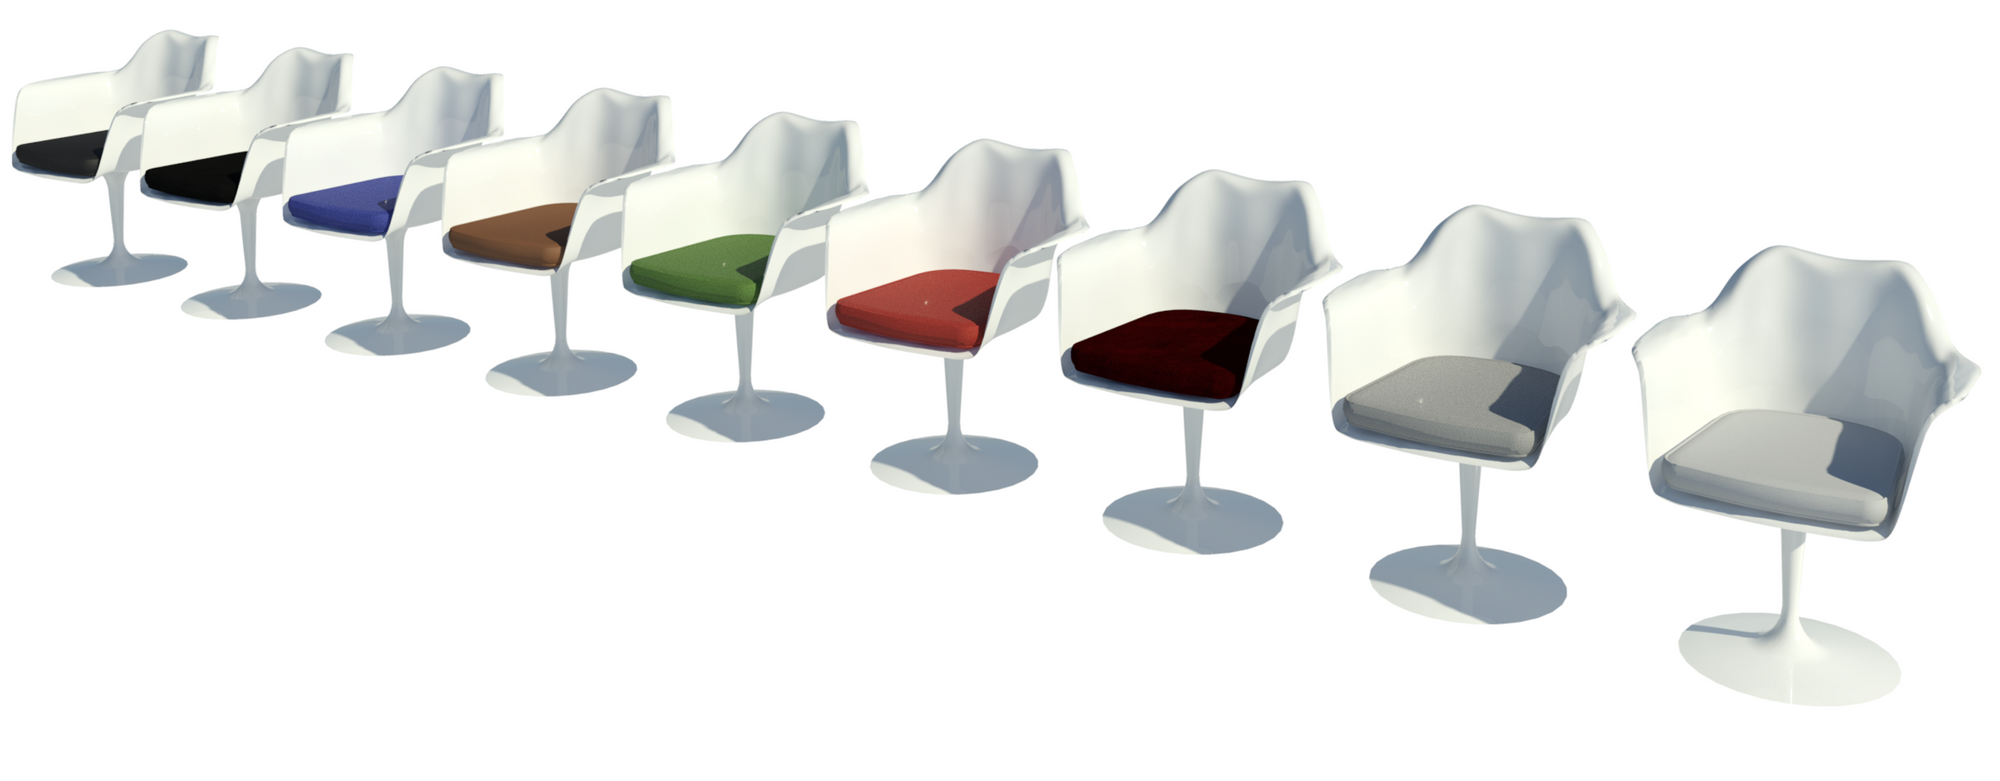 Revit raytrace showing nine white body types of Tulip chair.